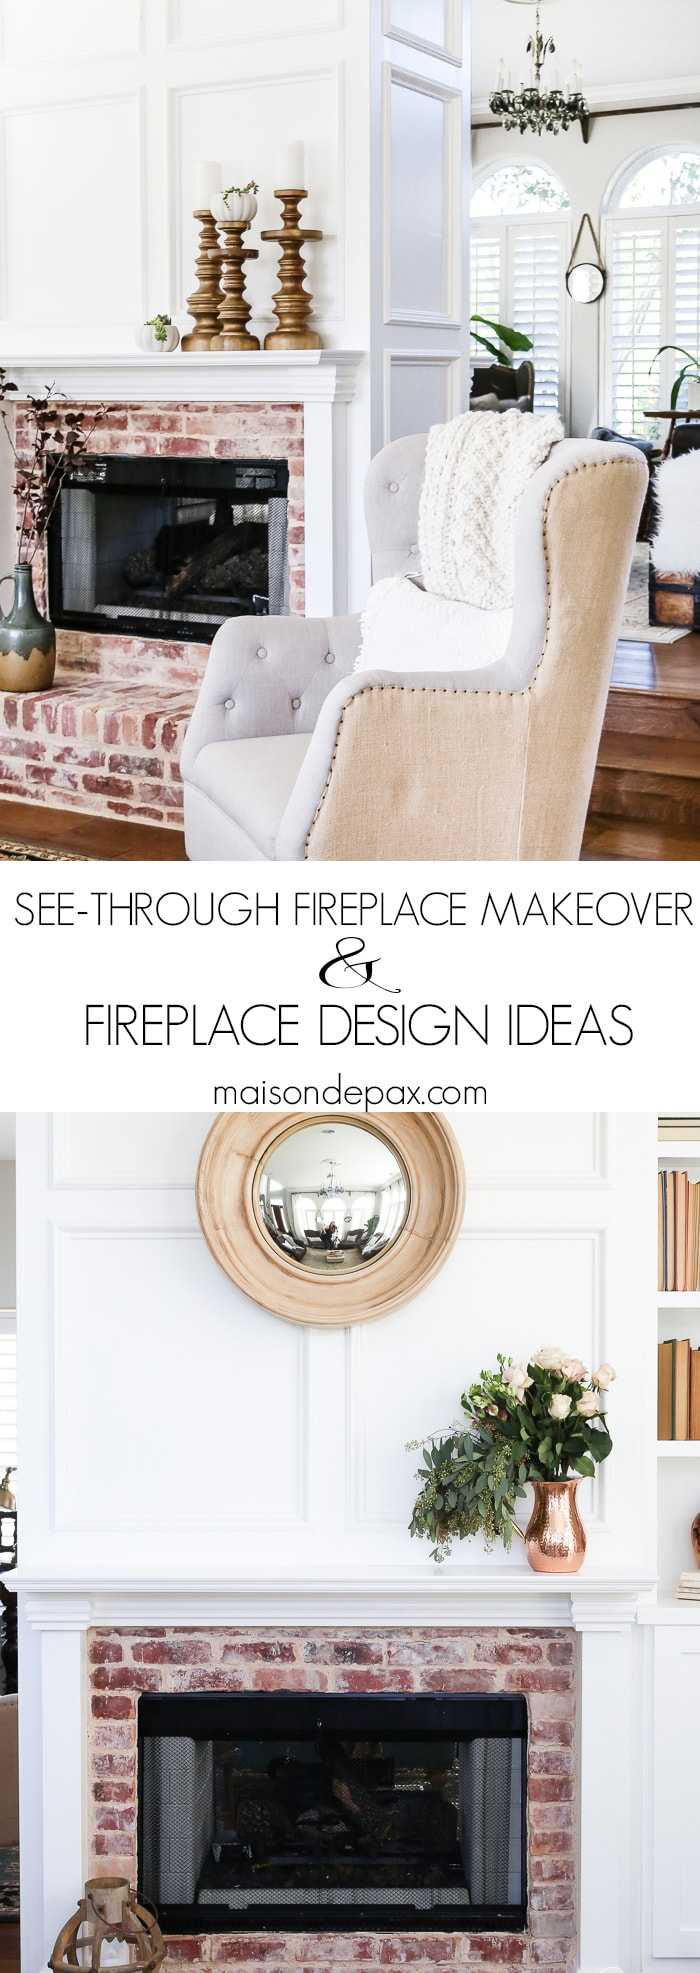 Fireplace Mantle Ideas- Maison de Pax